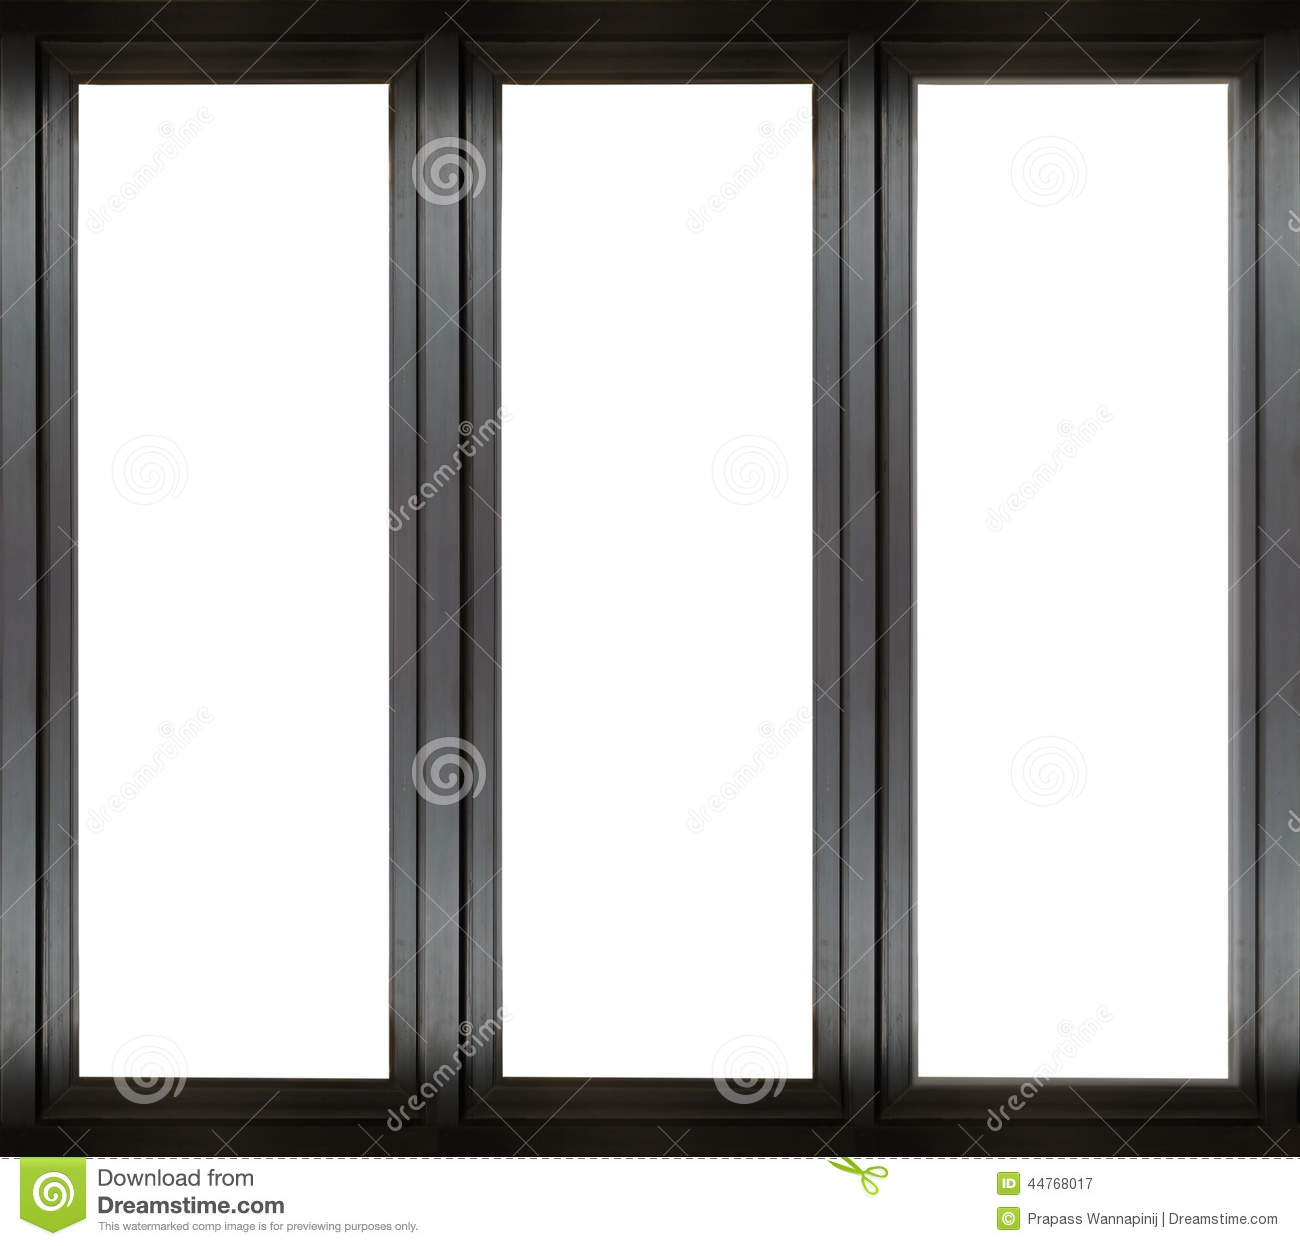 Black metal window frame stock image image of close for Porte fenetre aluminium